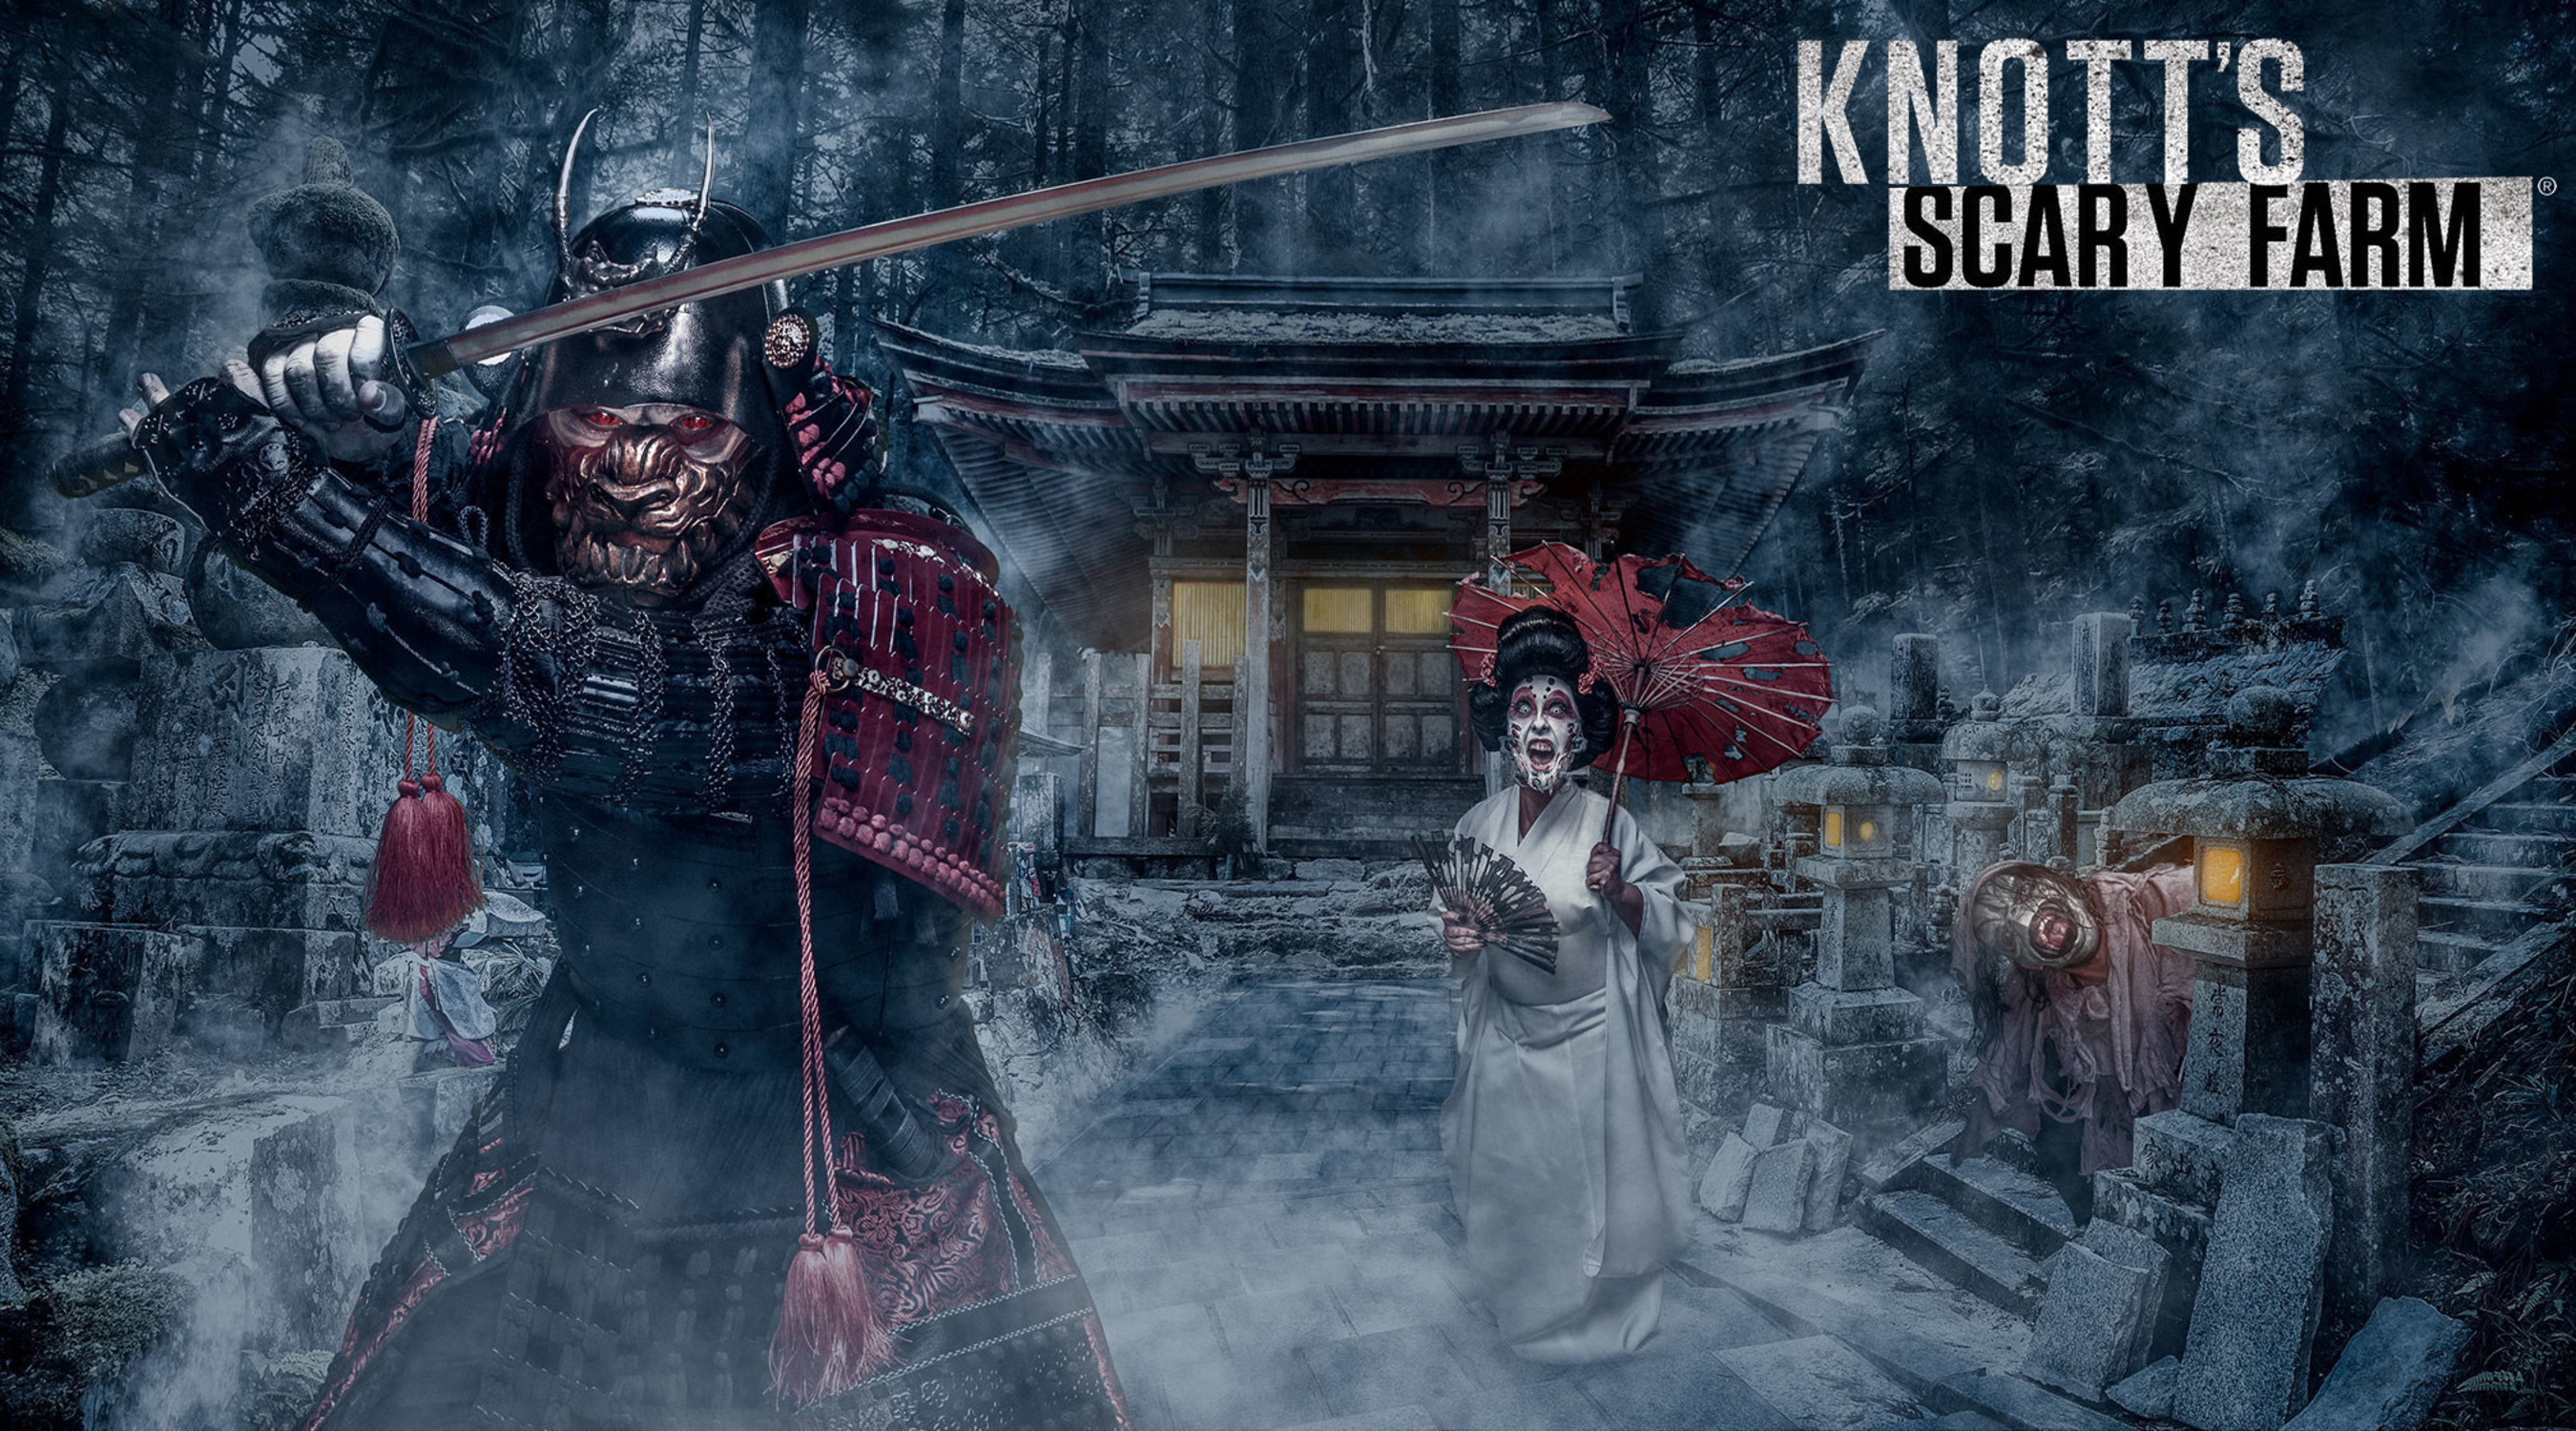 Knott's Scary Farm's Newest Maze, Shadow Lands